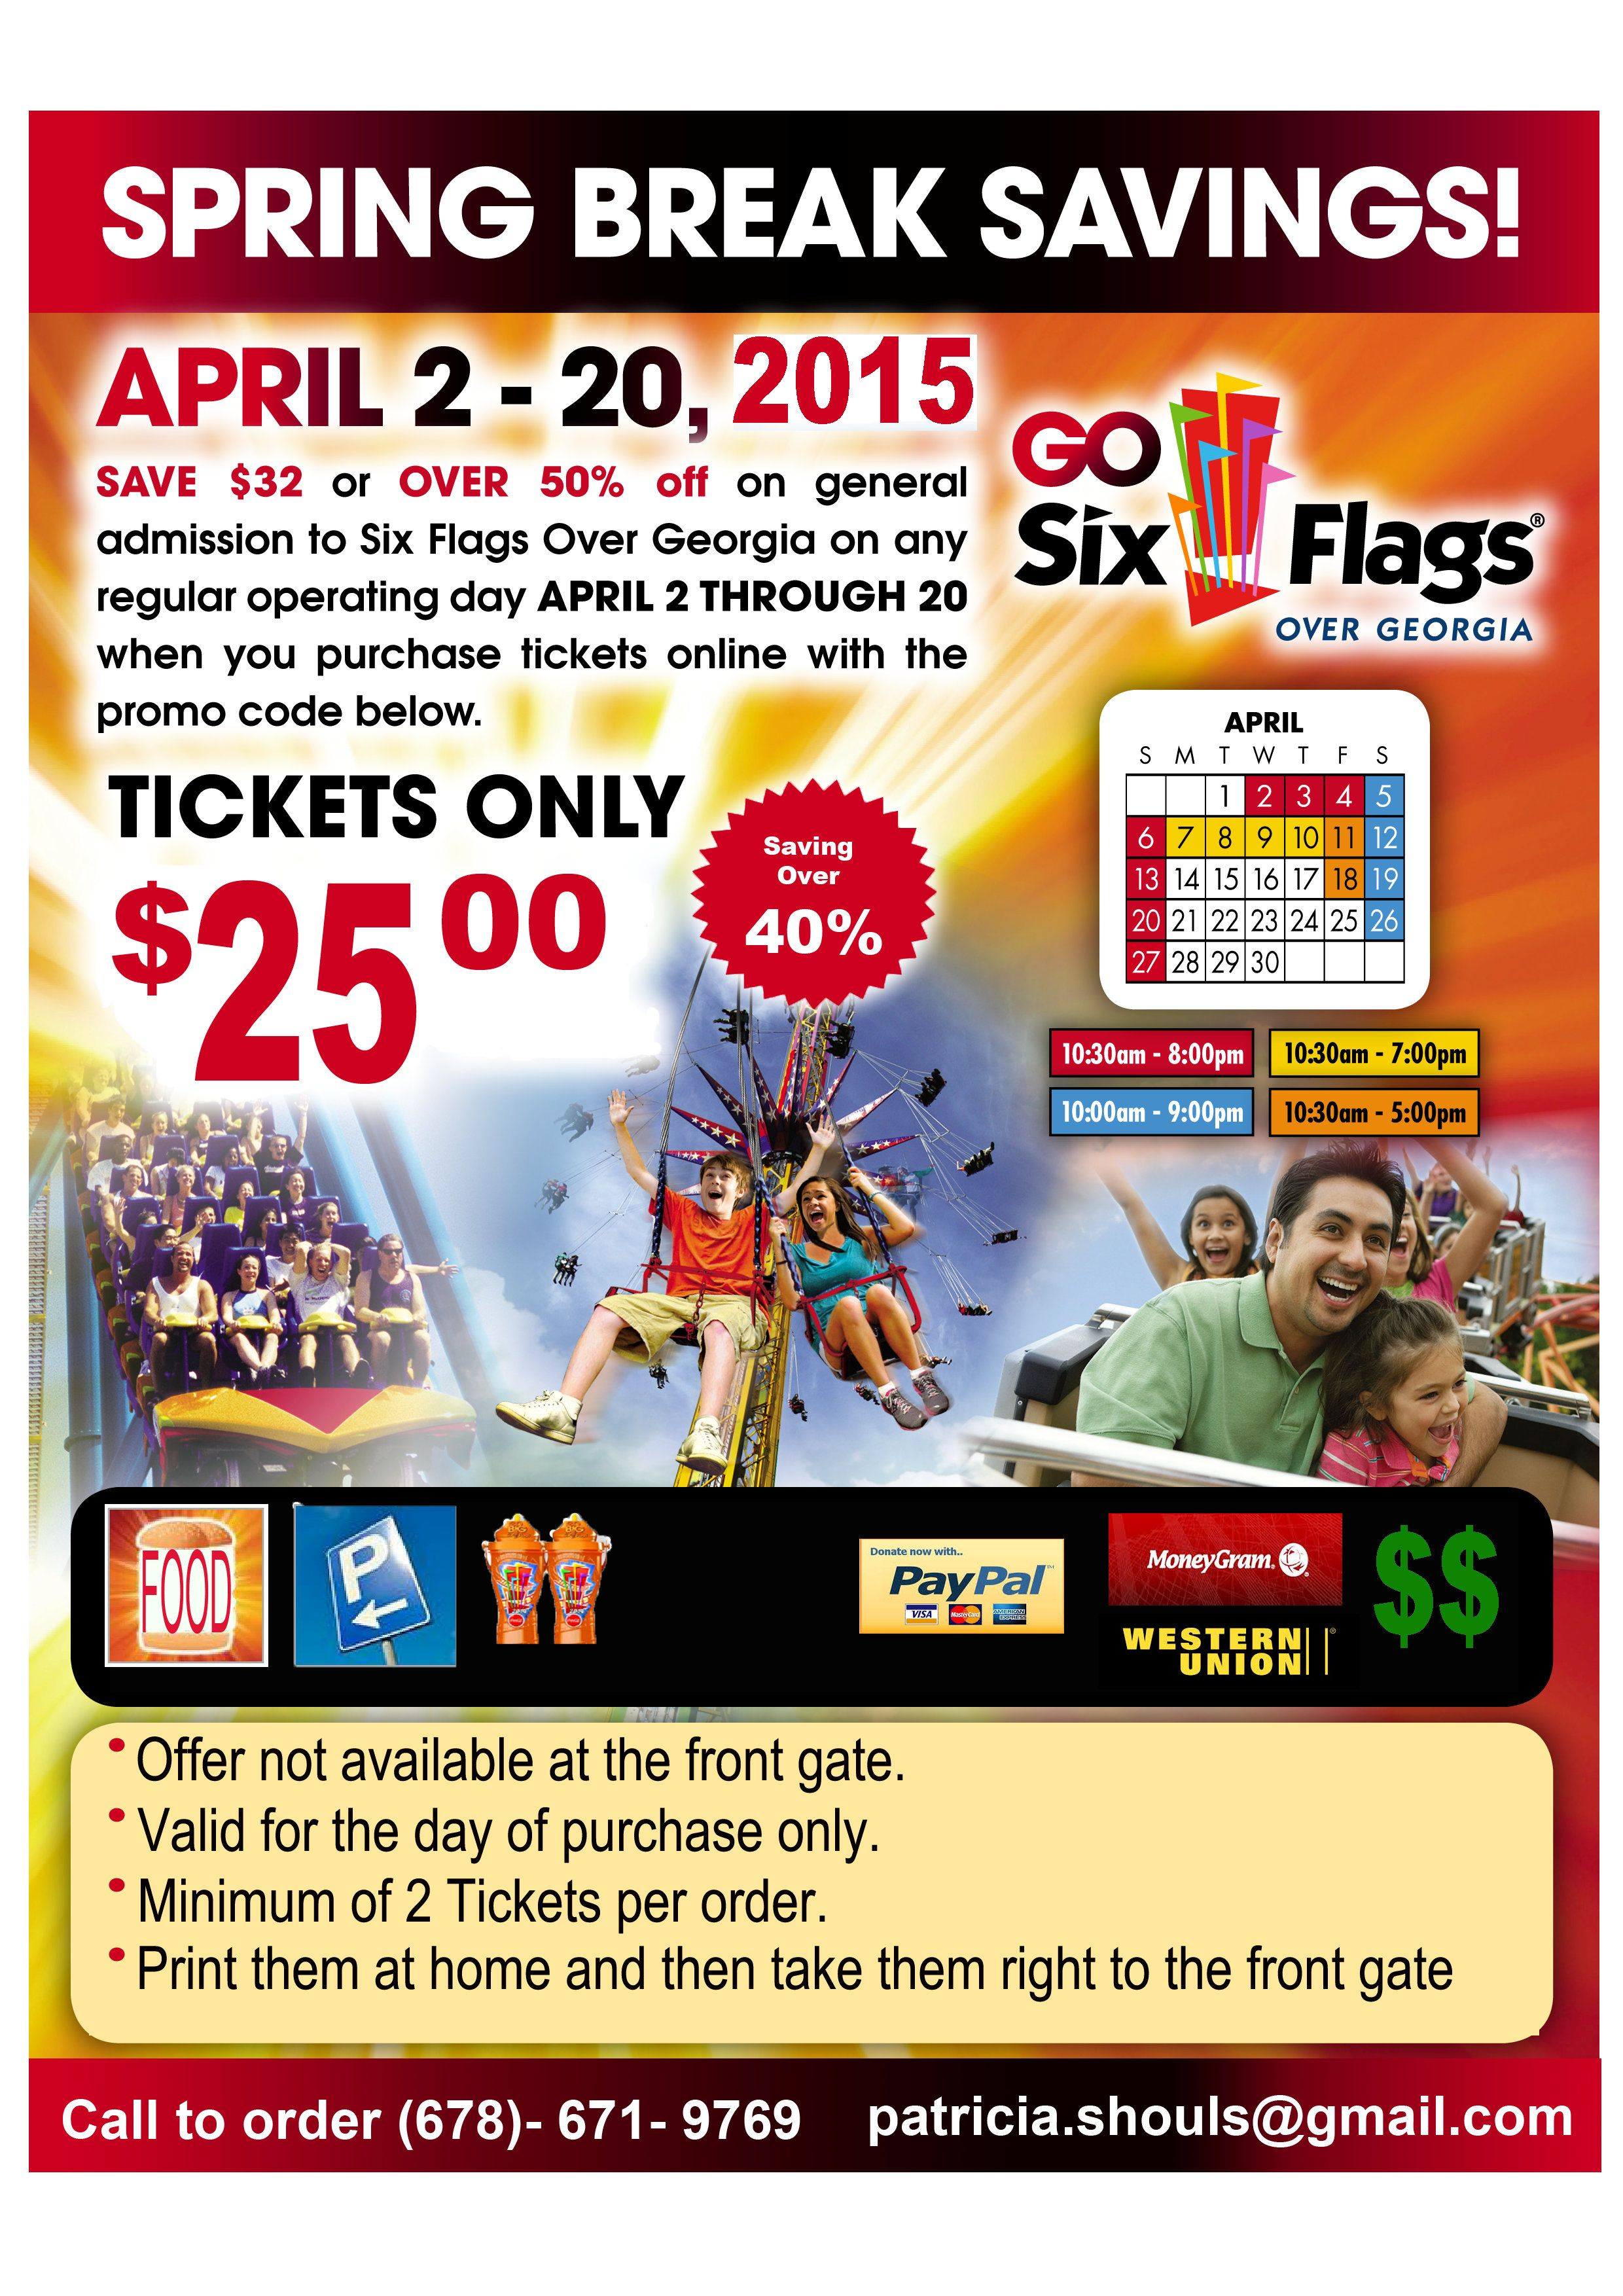 Patricia Shouls Currently Has Discounted Six Flags Tickets For Spring Break For A Limited Time Only Spring Break Six Flags Online Tickets